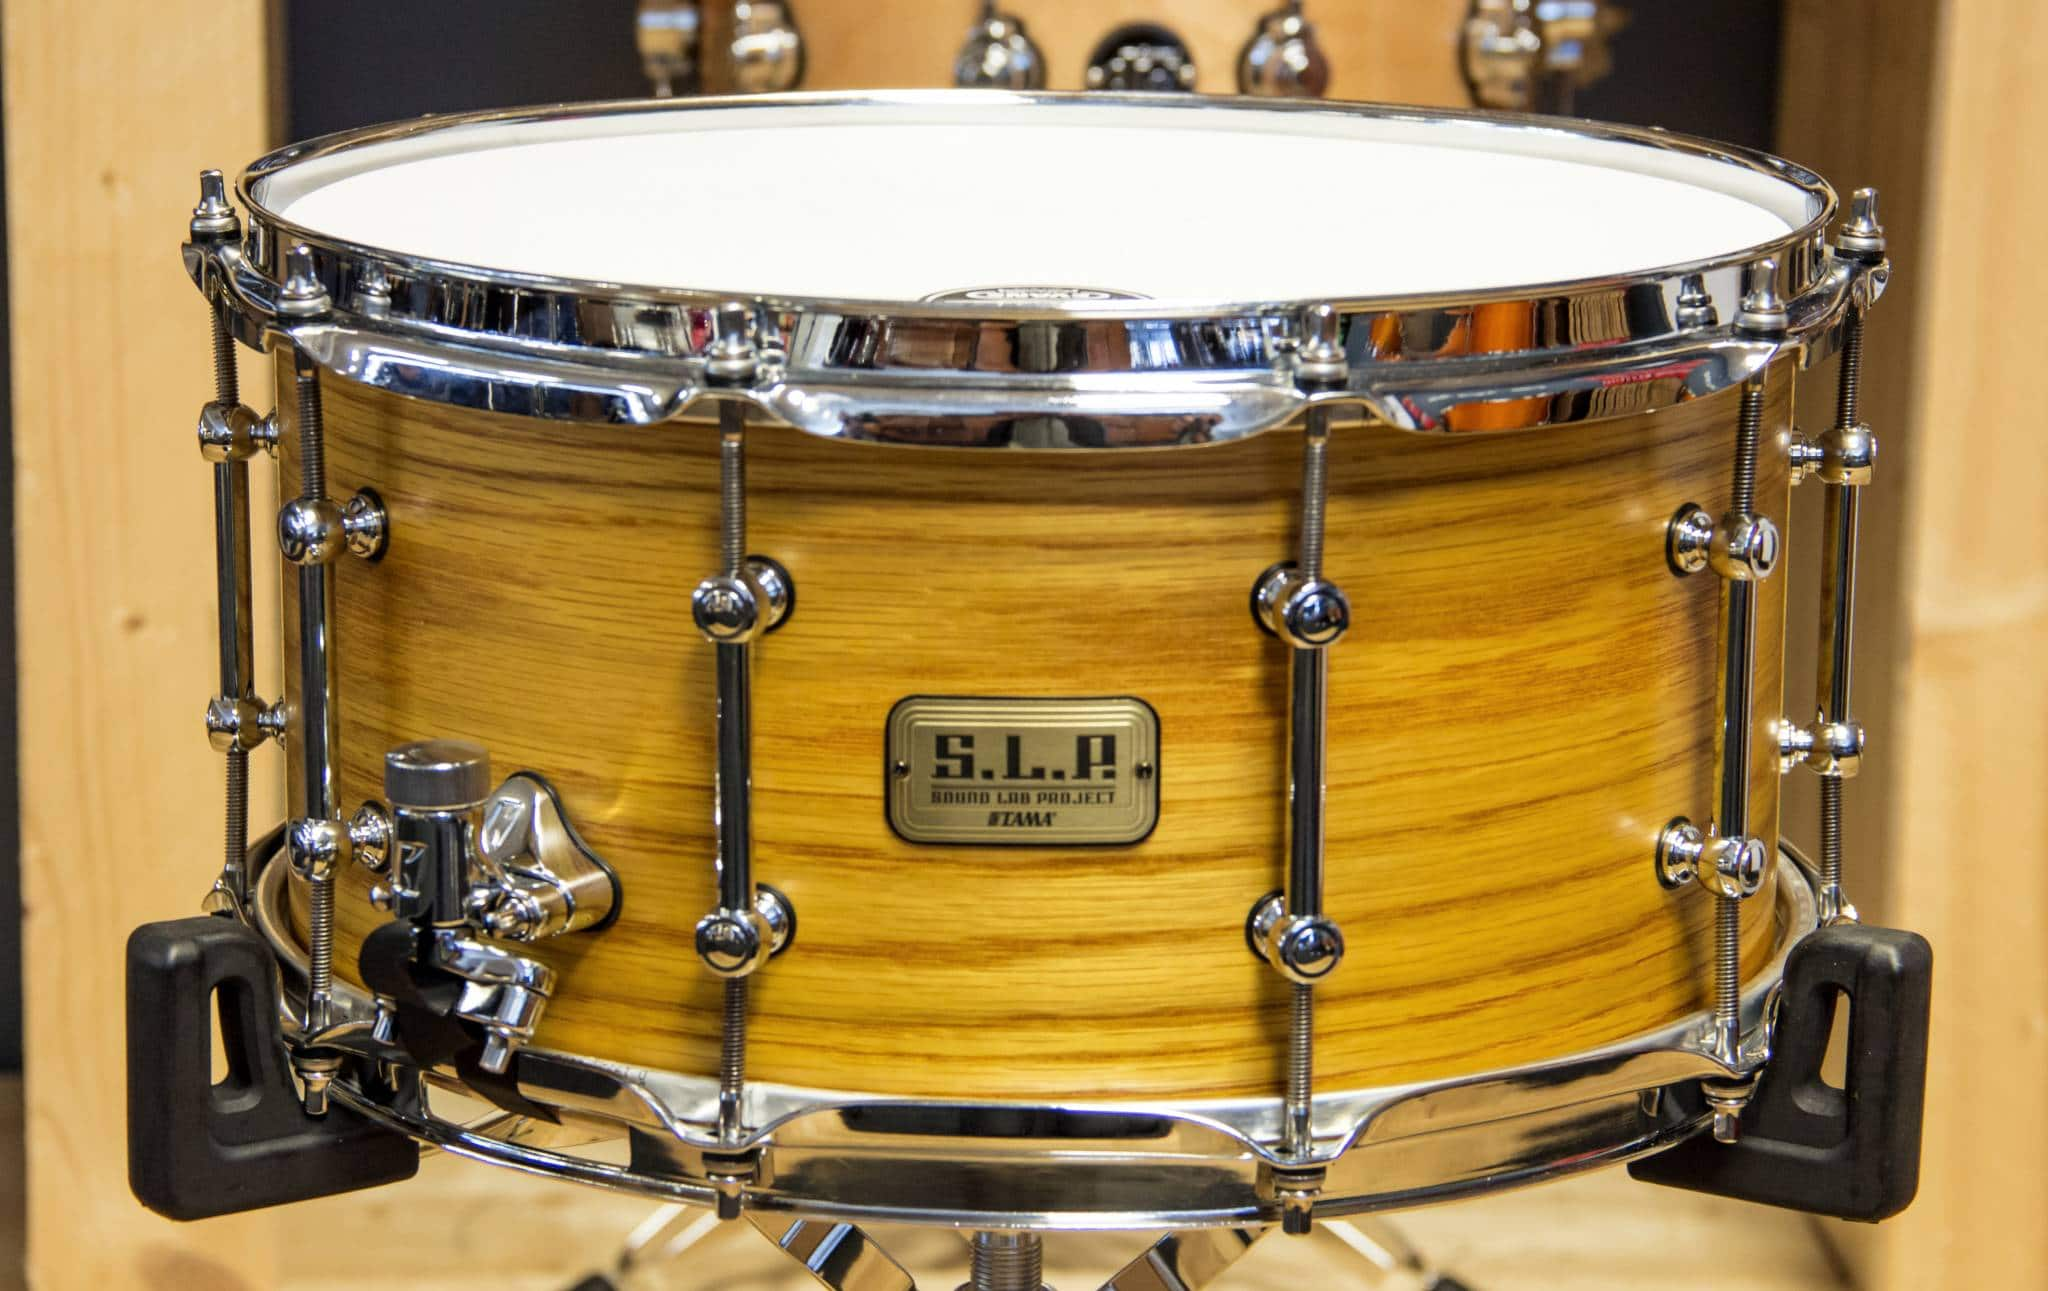 Tama LBO147-MTO Limited Edition Sound Lab Project (S.L.P.) snaredrum